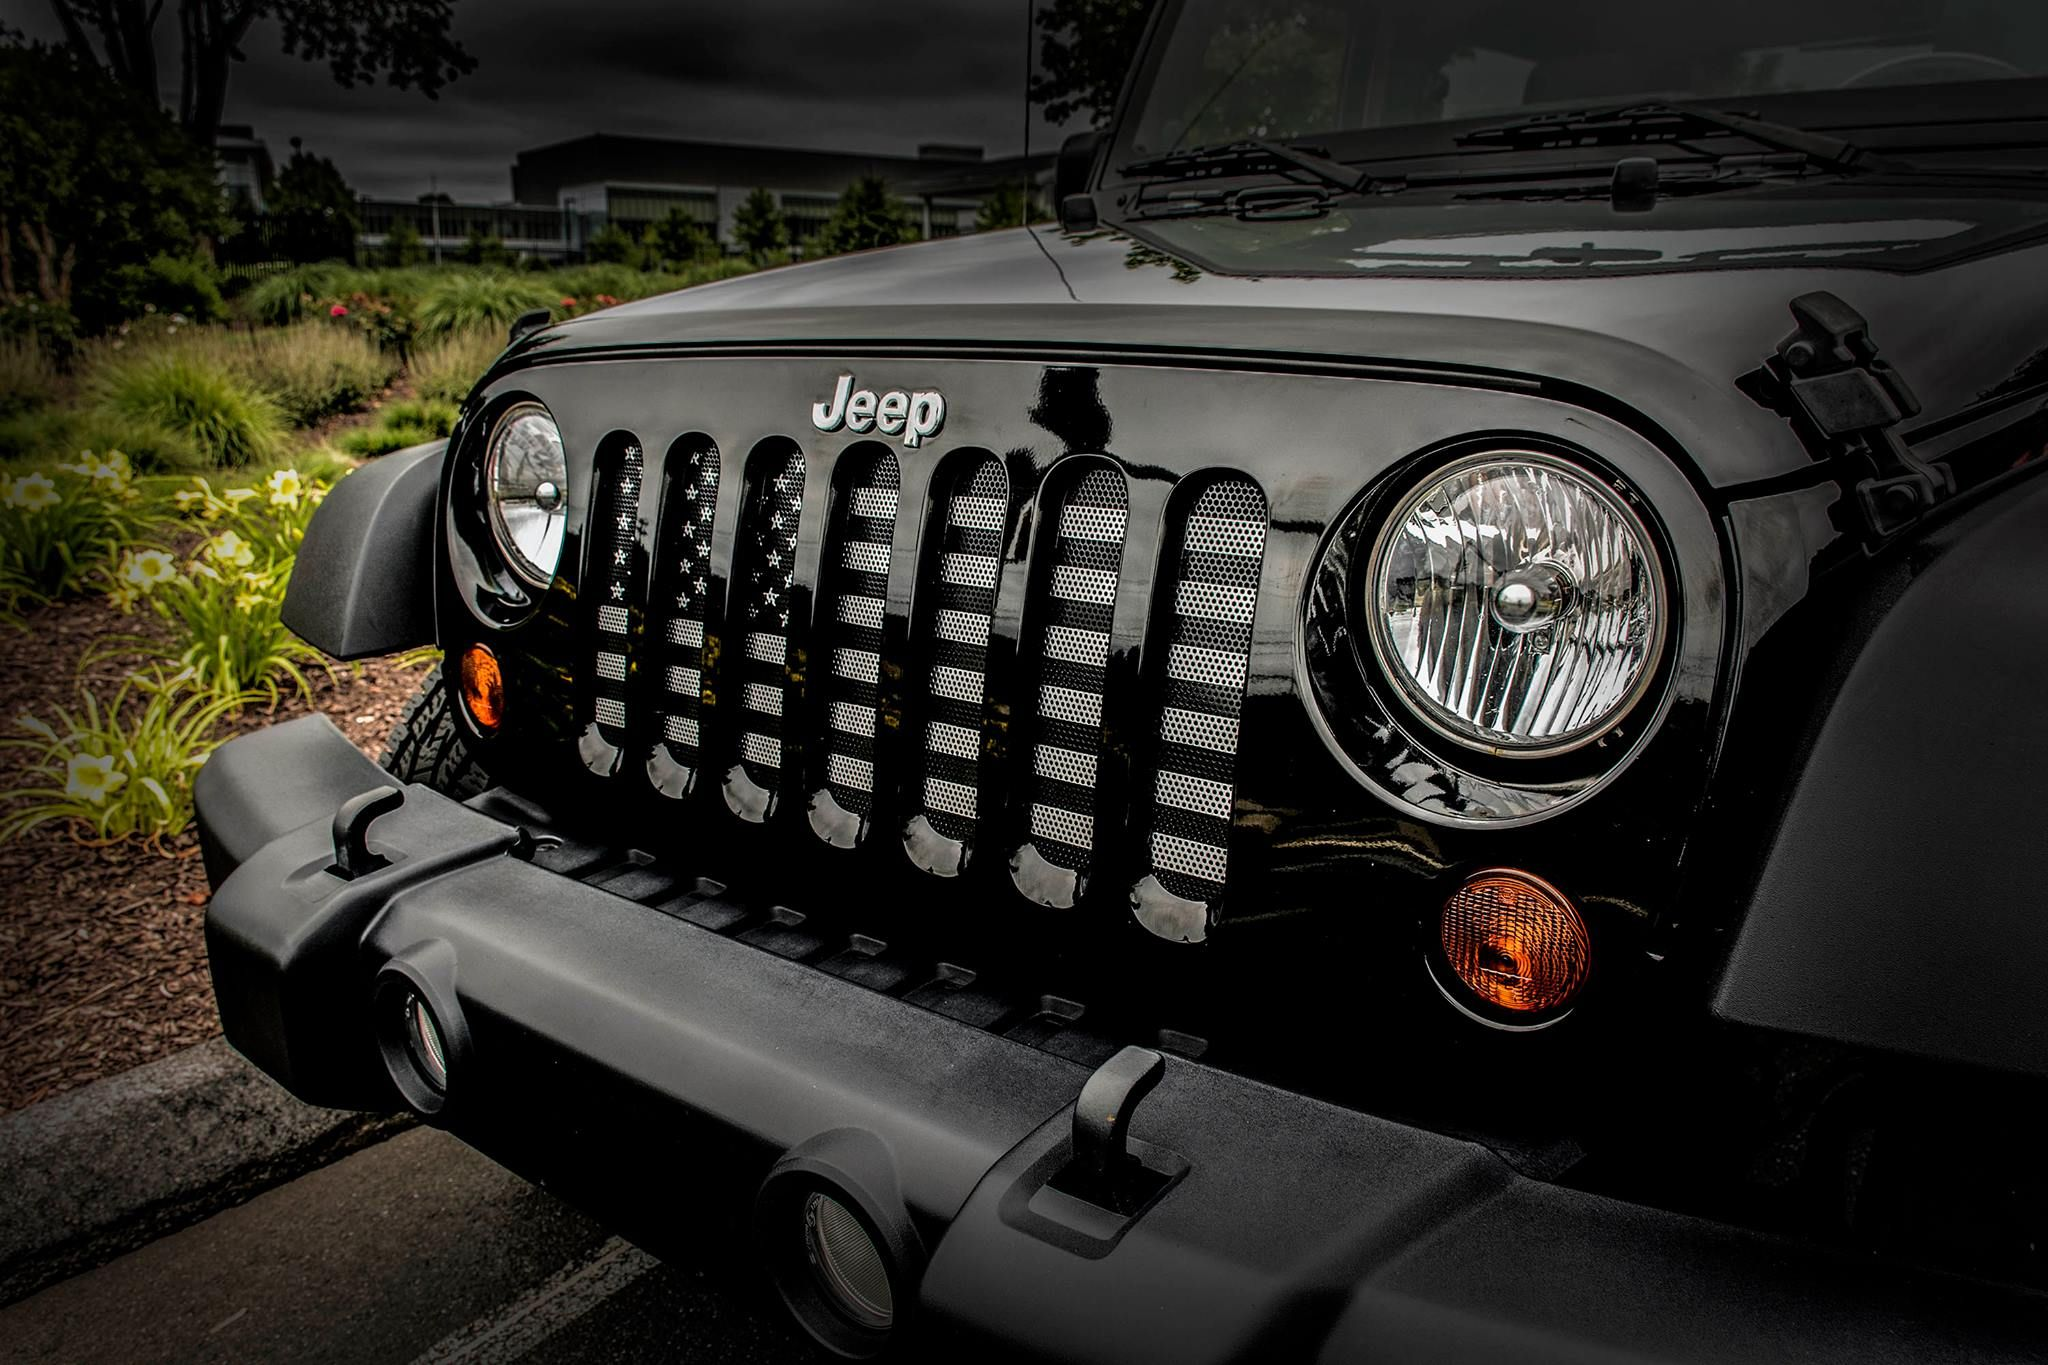 made in the usa patriotic flag grille insert ships free transform the look of [ 2048 x 1365 Pixel ]